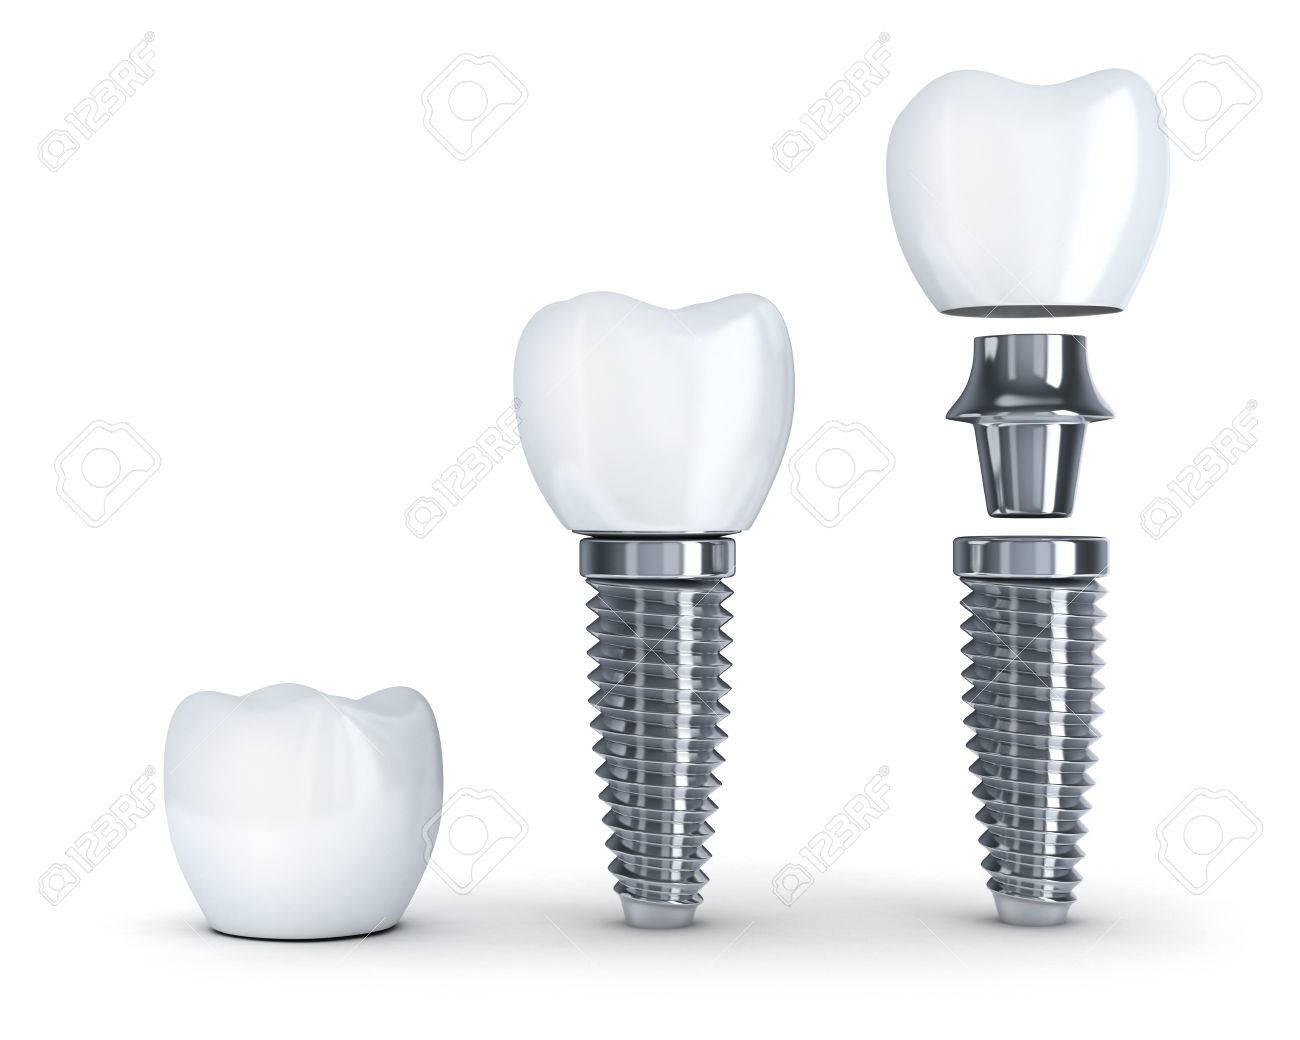 Tooth implant disassembled (done in 3d, isolated) - 47535068